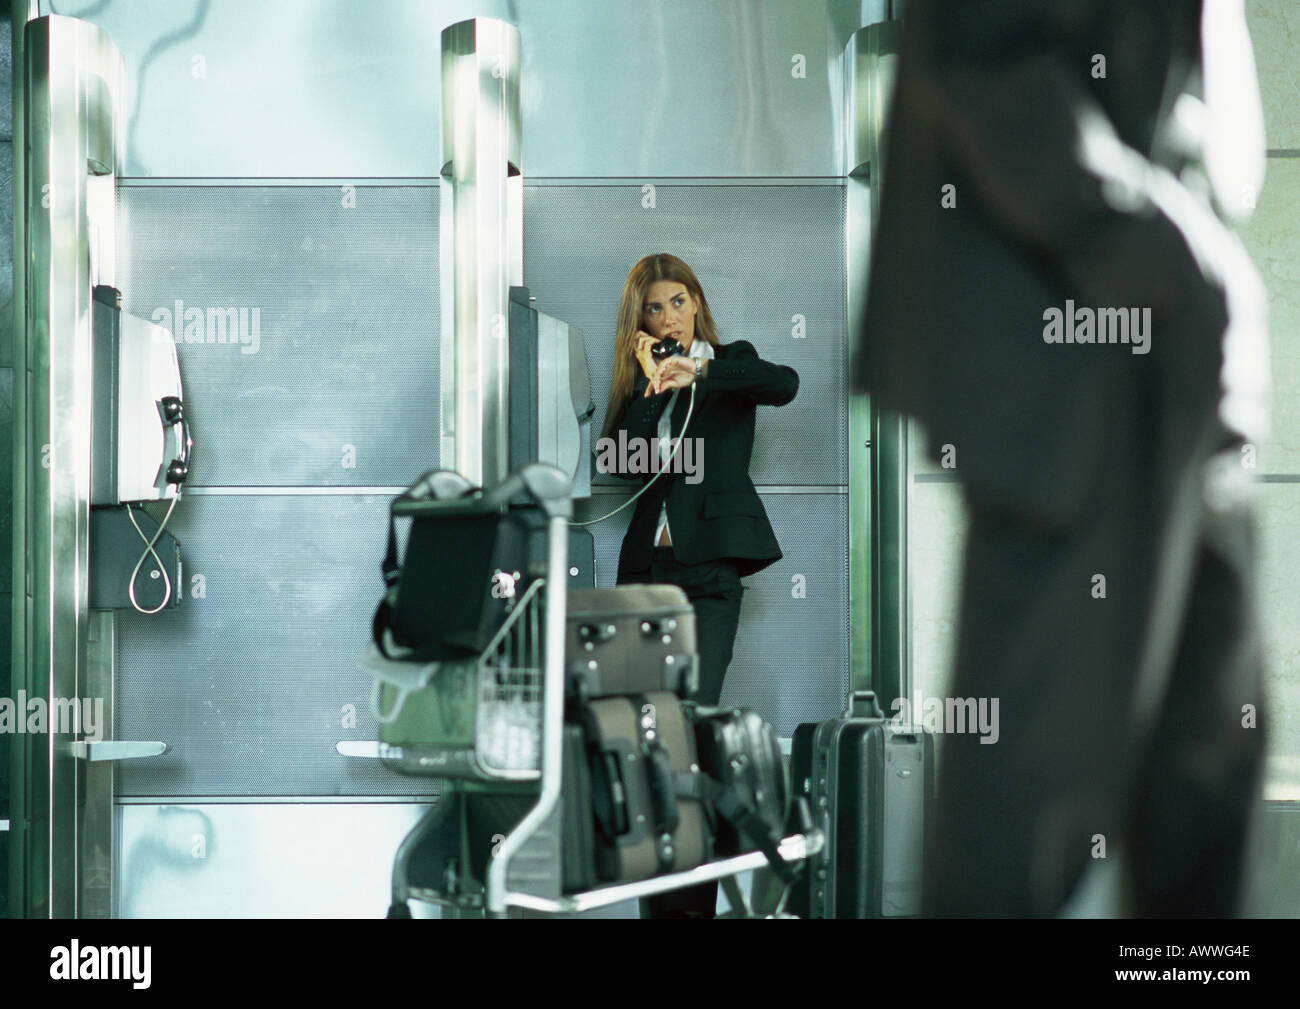 Businesswoman talking on public pay phone in airport - Stock Image